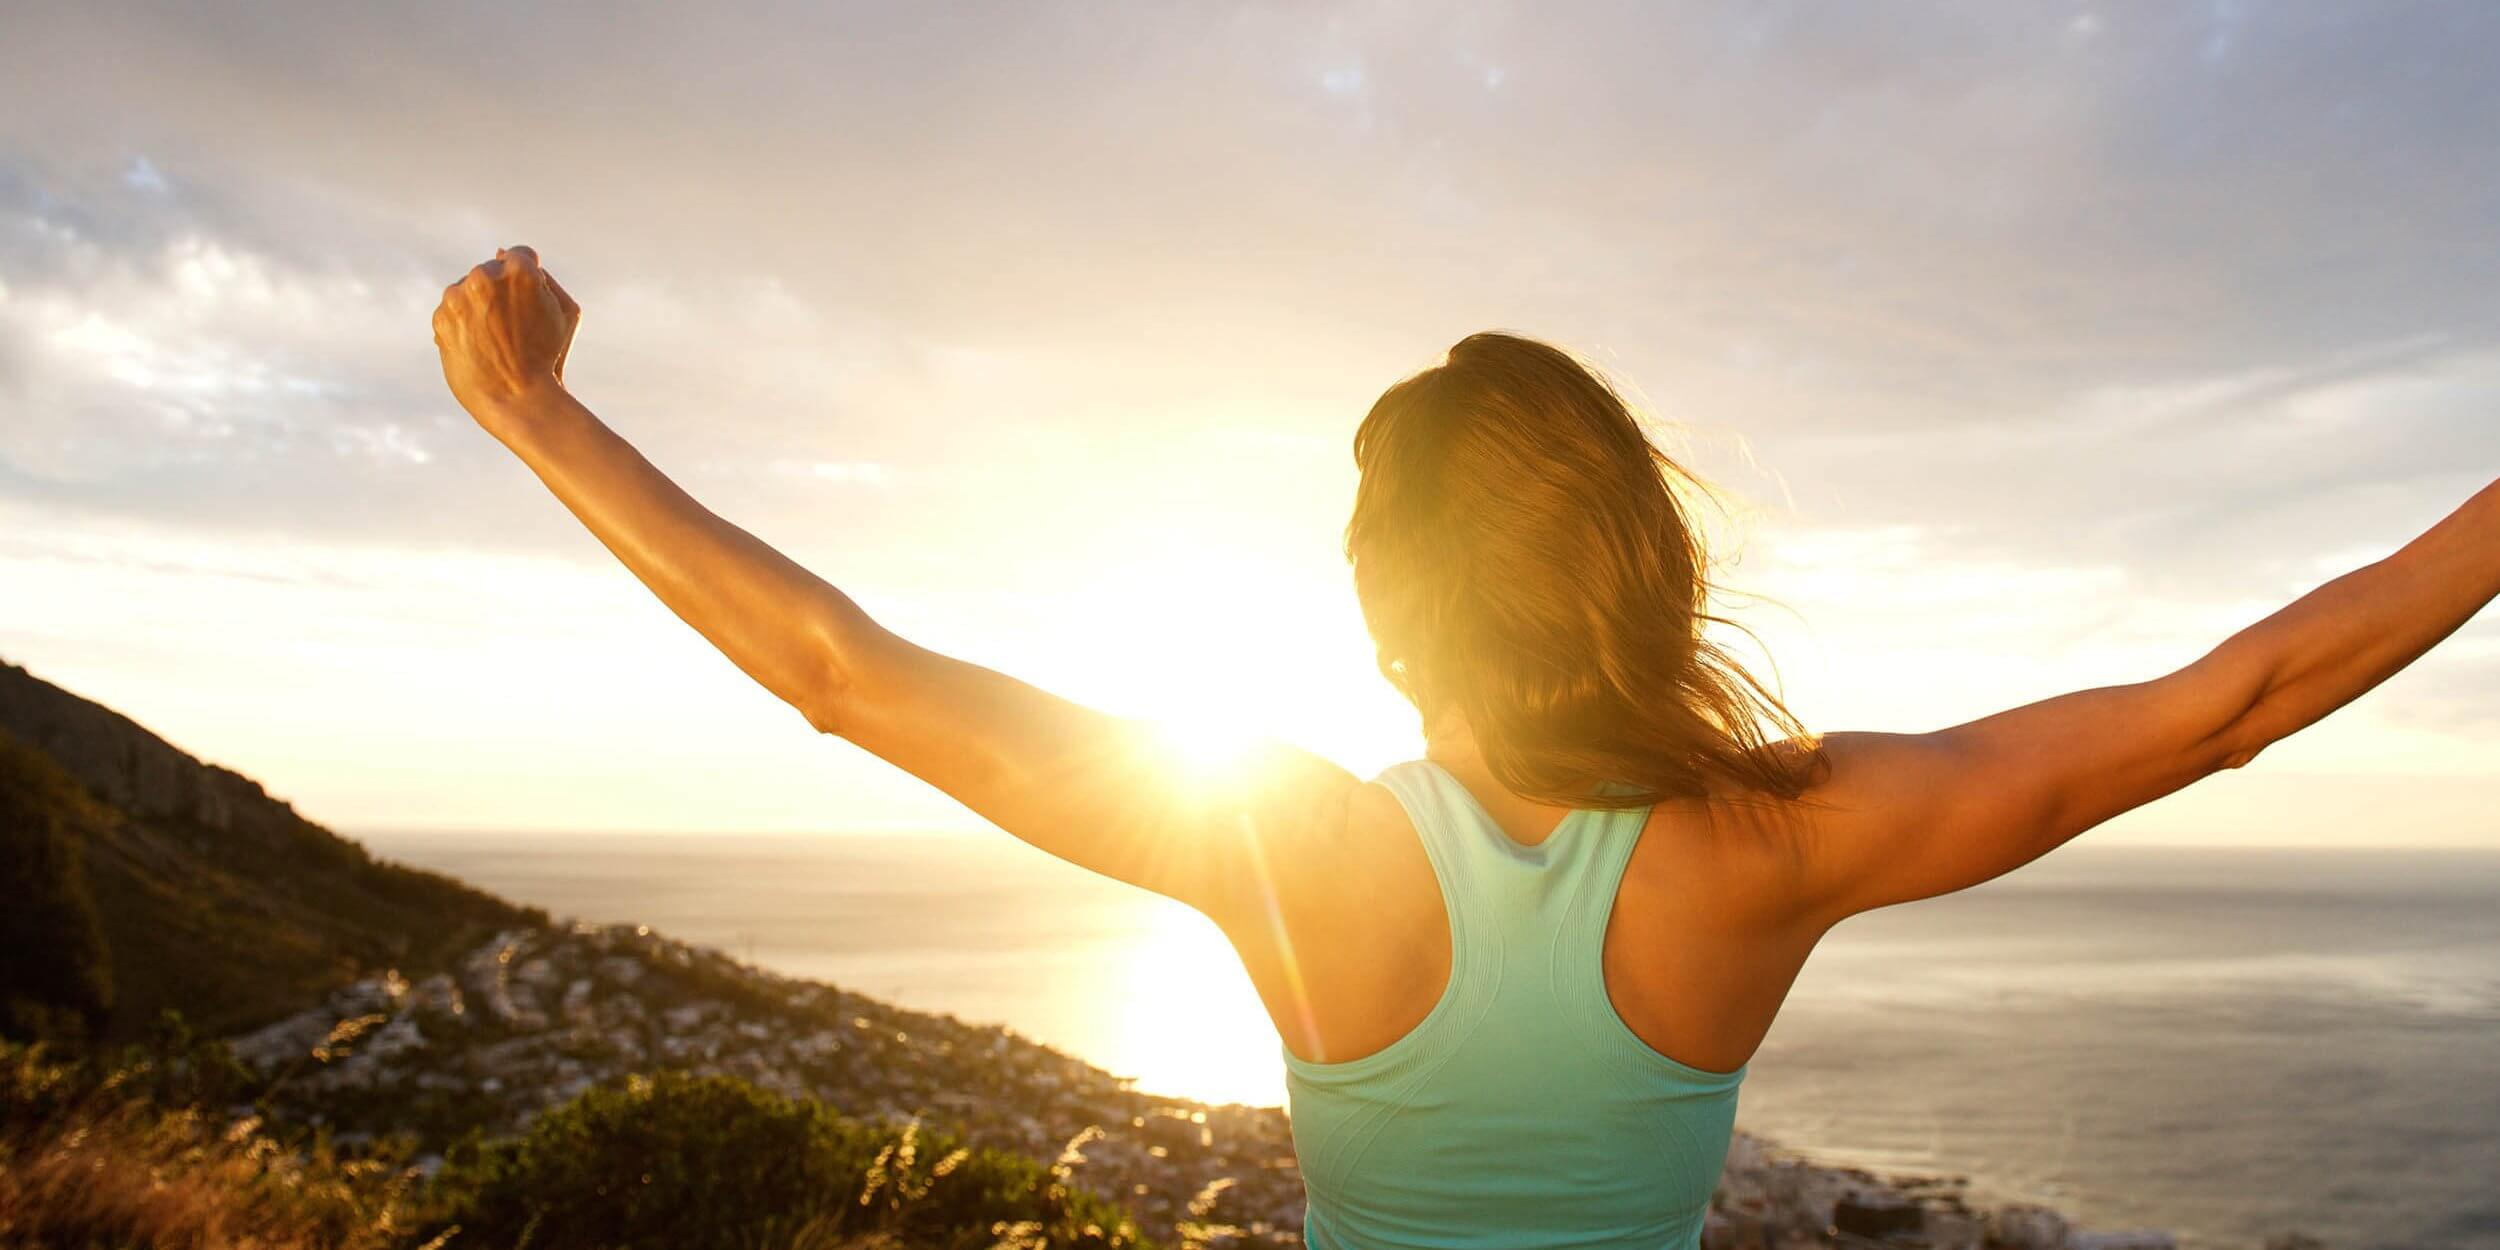 Woman from behind stretching out arms by sunrise